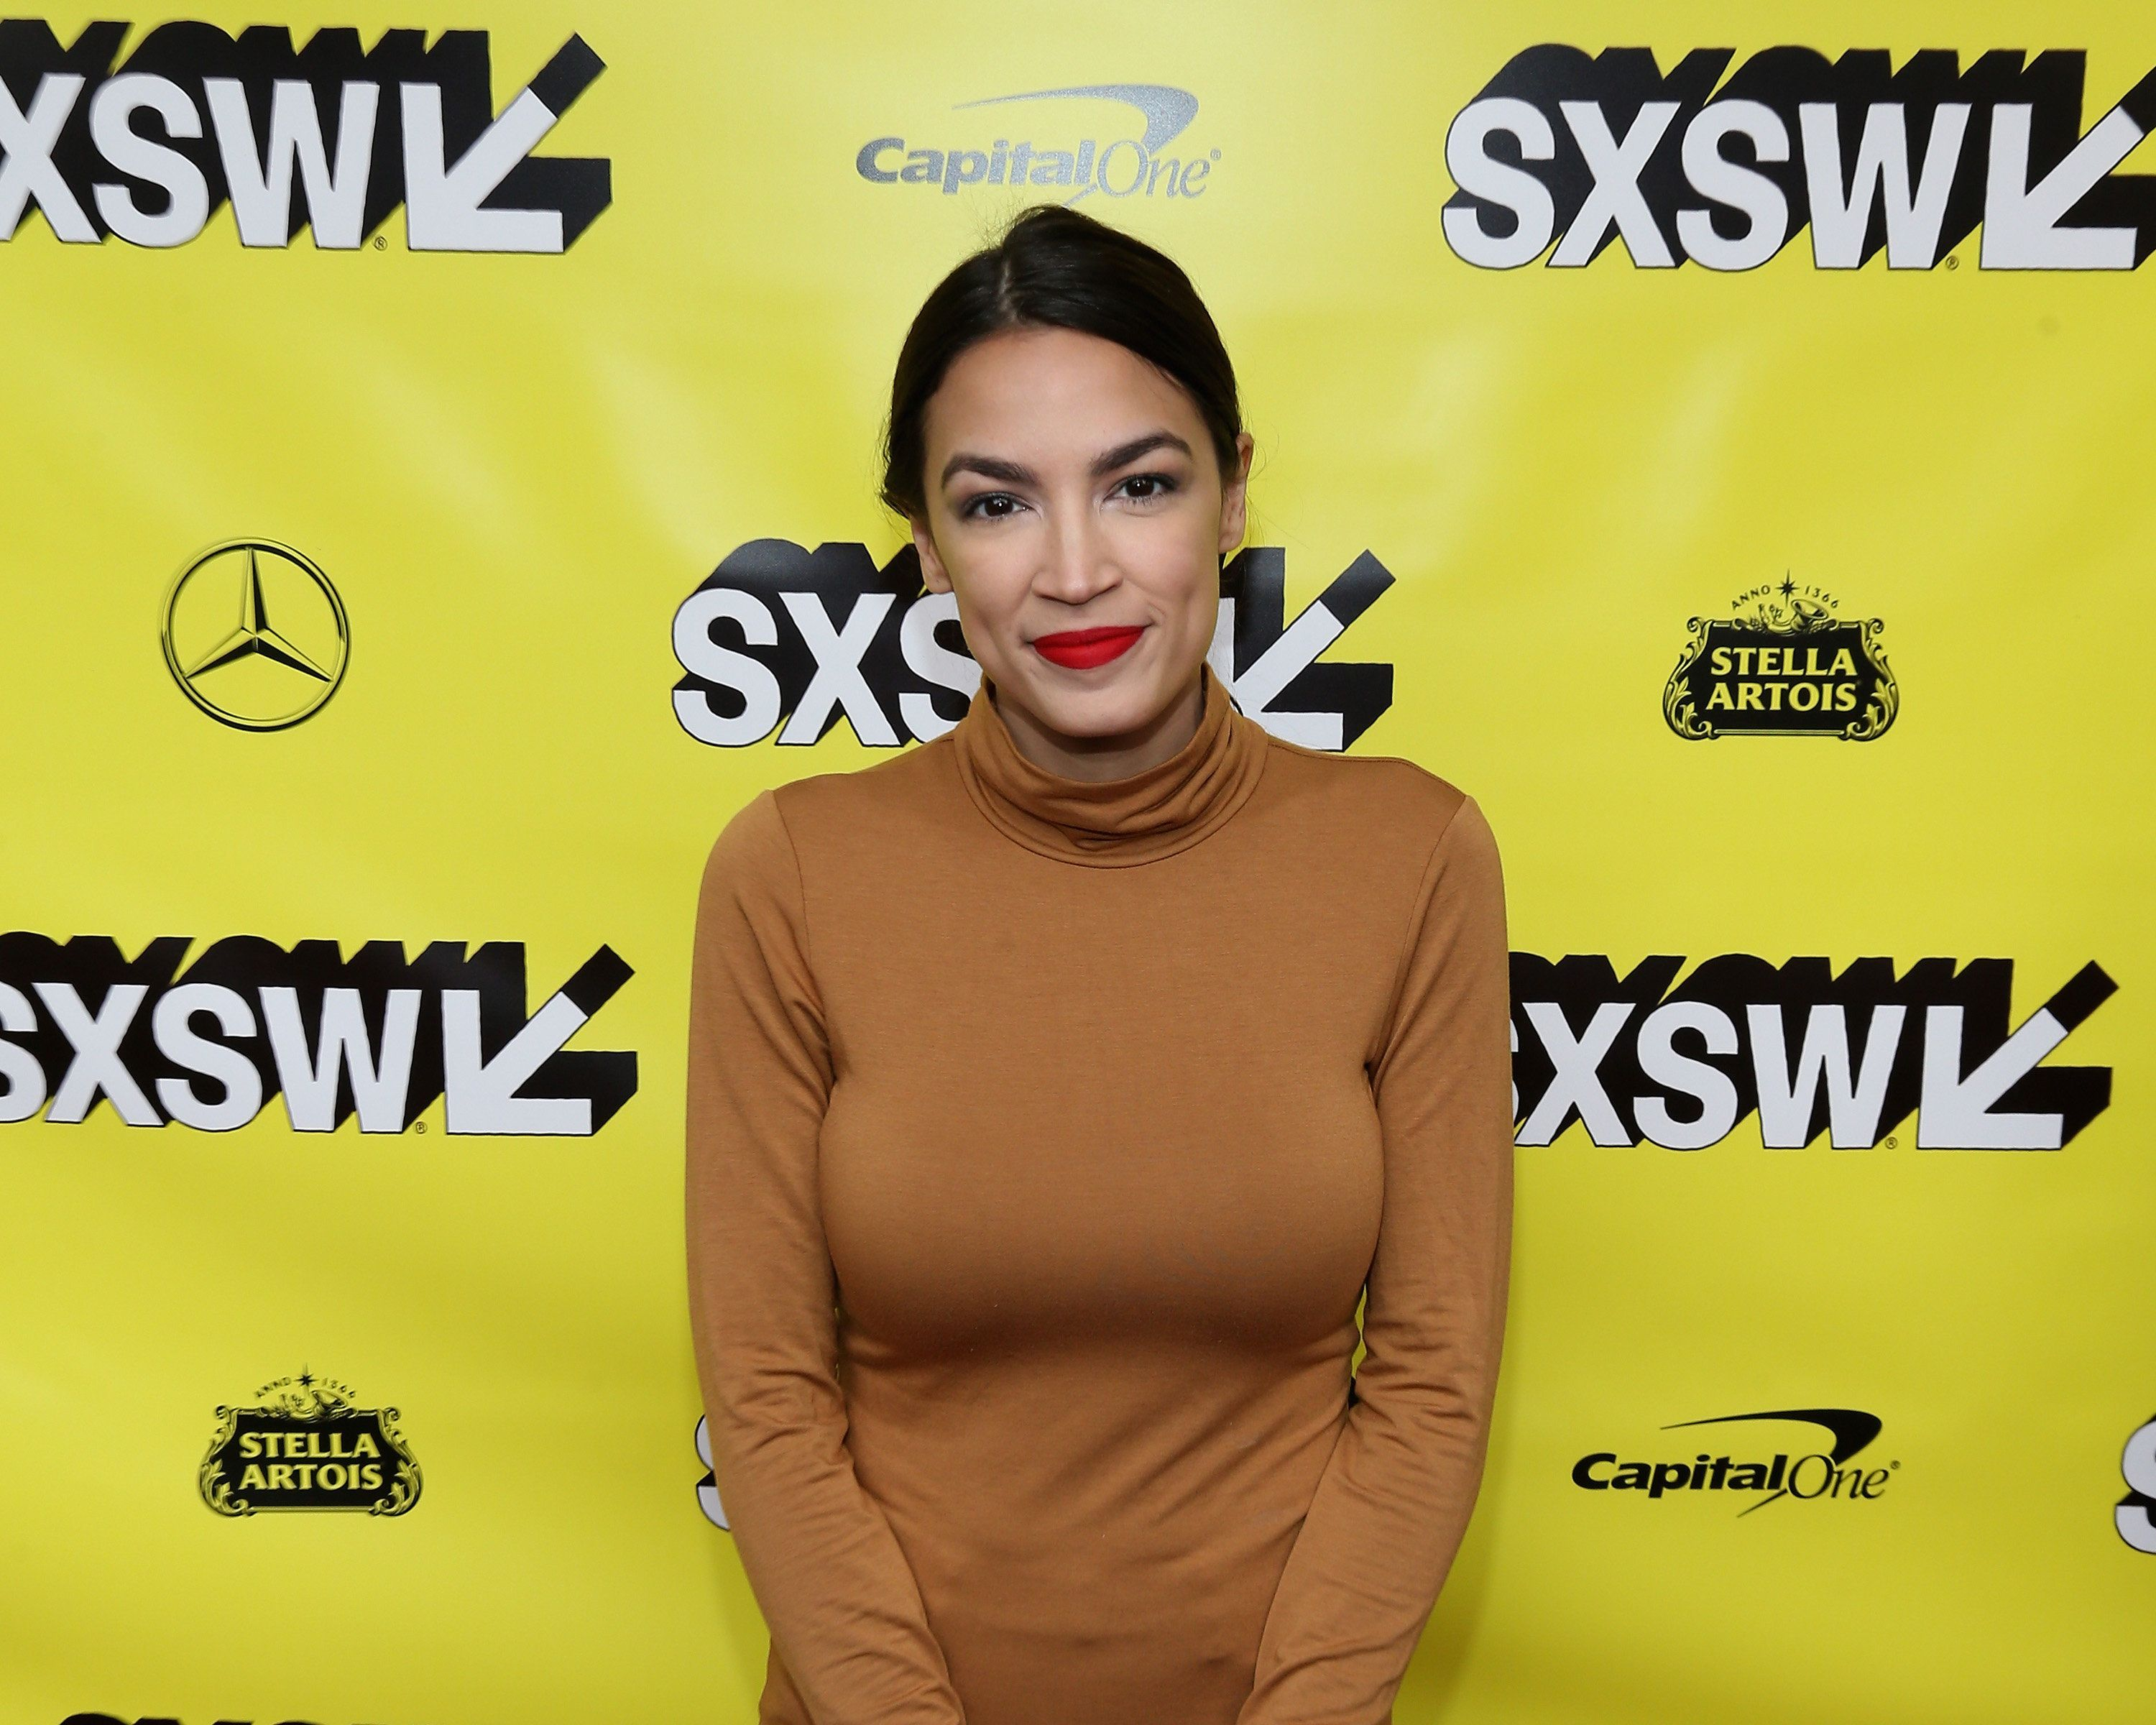 Ocasio-Cortez's Twitter Plea For Furniture Advice Goes Hilariously Off The